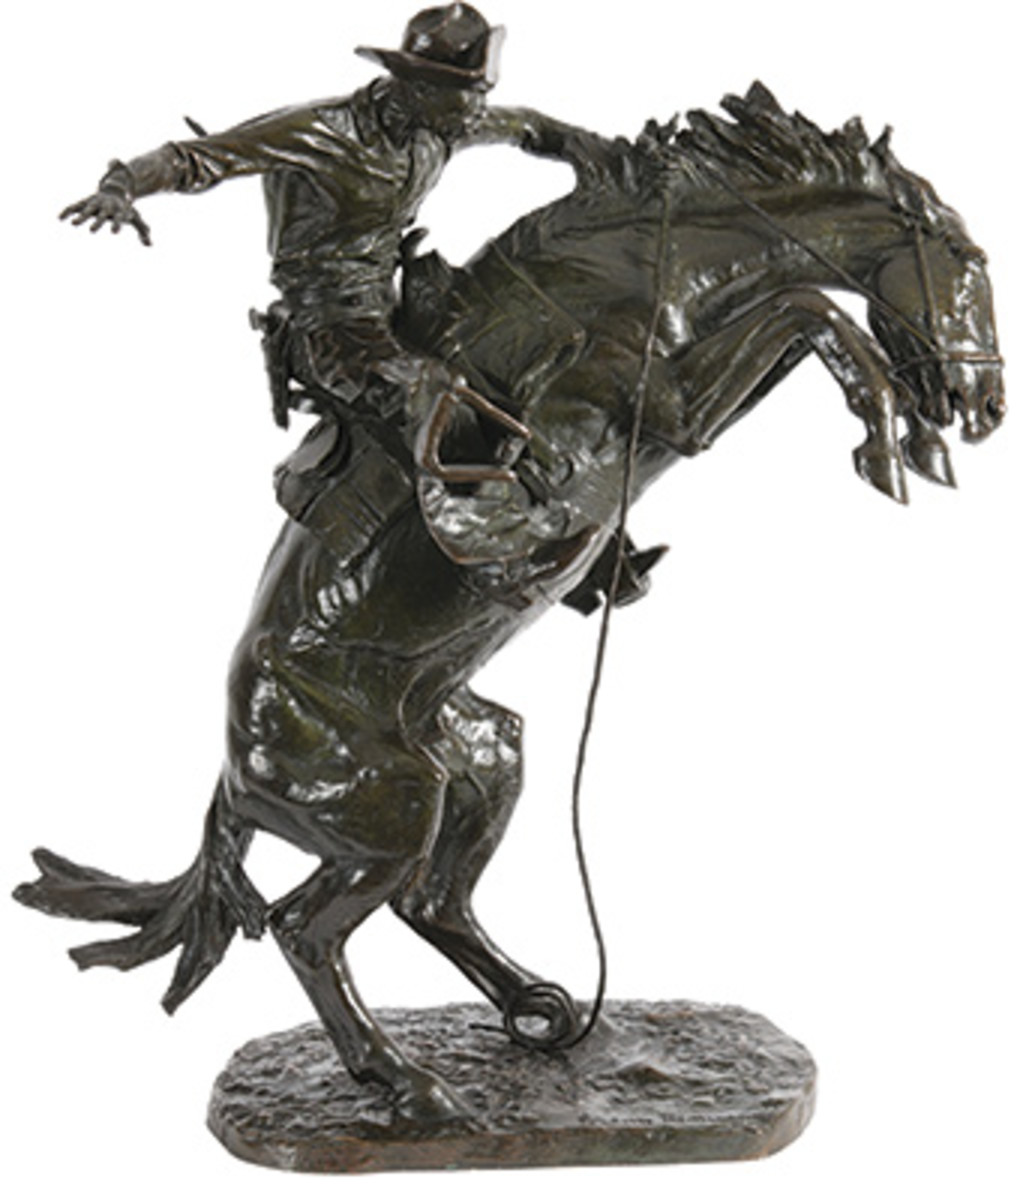 Frederic Remington's The Bronco Buster soared to a final selling price of $615,000 and took top lot. All images courtesy of Heritage Auctions